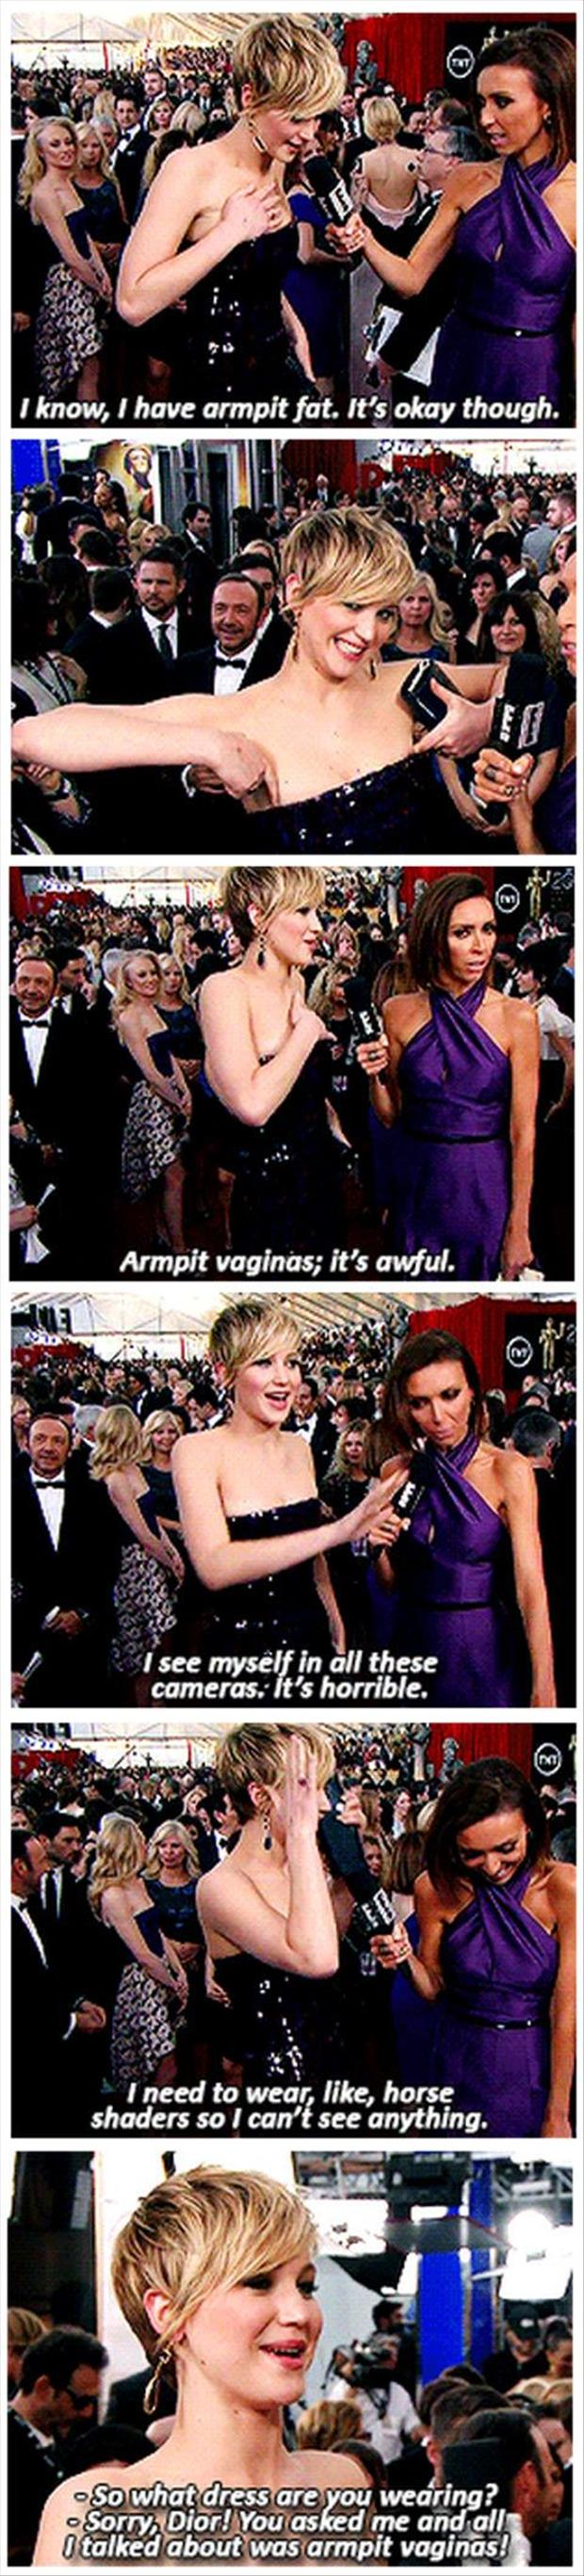 jennifer lawrence talking about armpit vaginas